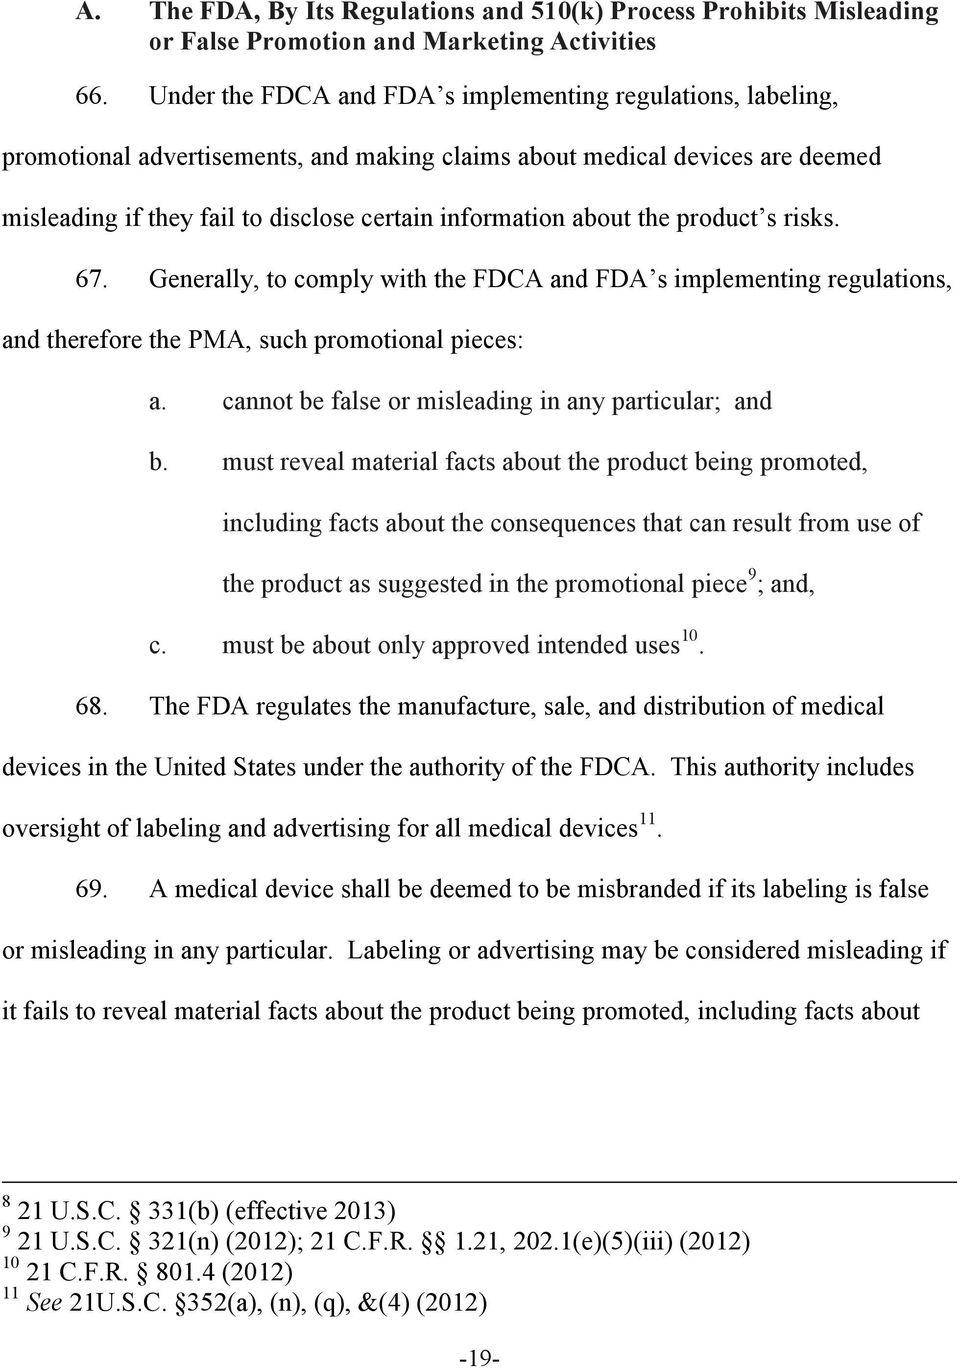 about the product s risks. 67. Generally, to comply with the FDCA and FDA s implementing regulations, and therefore the PMA, such promotional pieces: a.